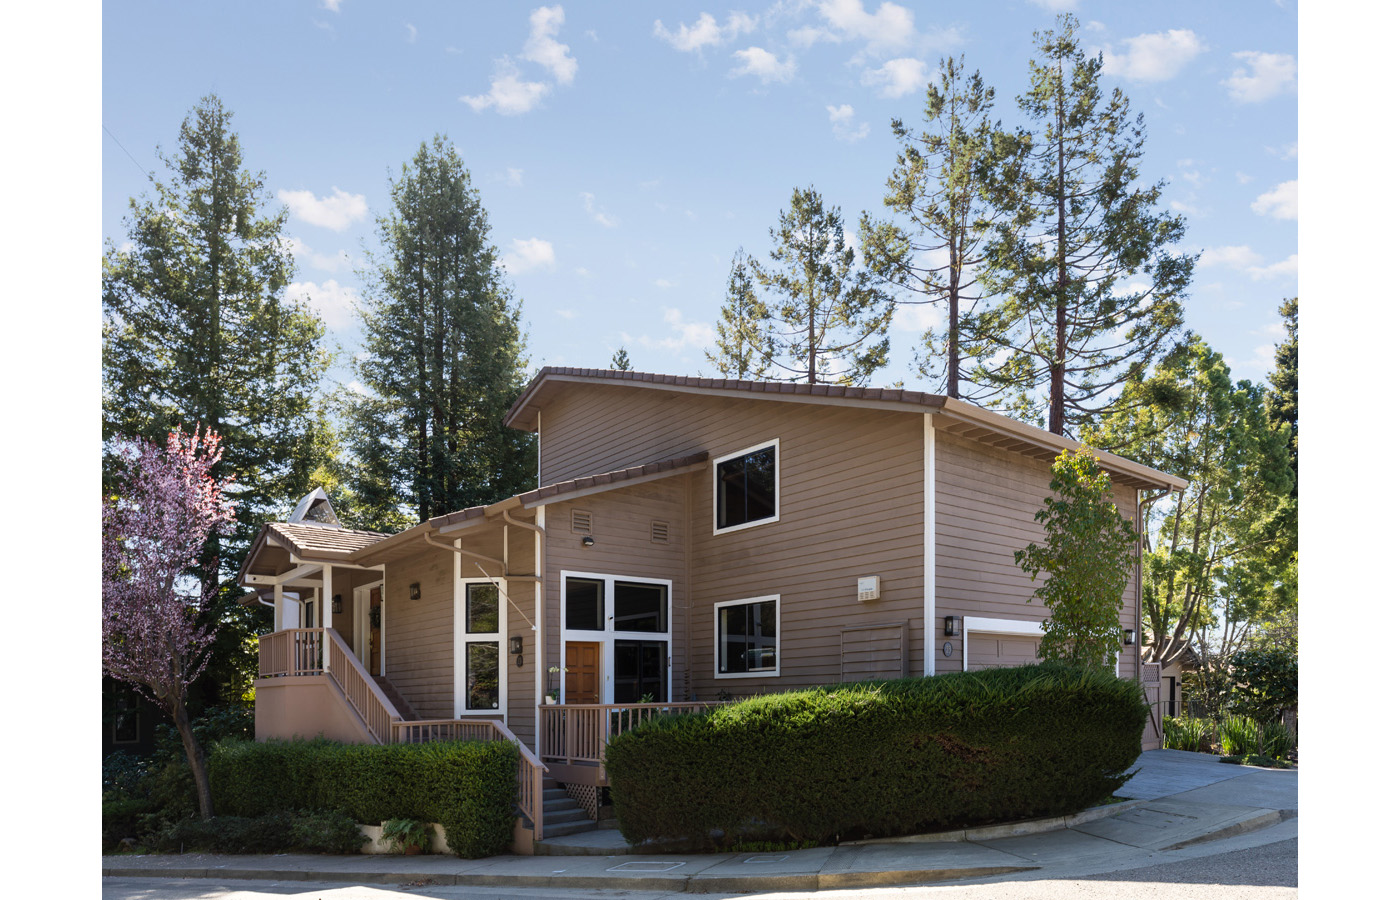 23 Bay Forest Drive, Oakland, CA 94611